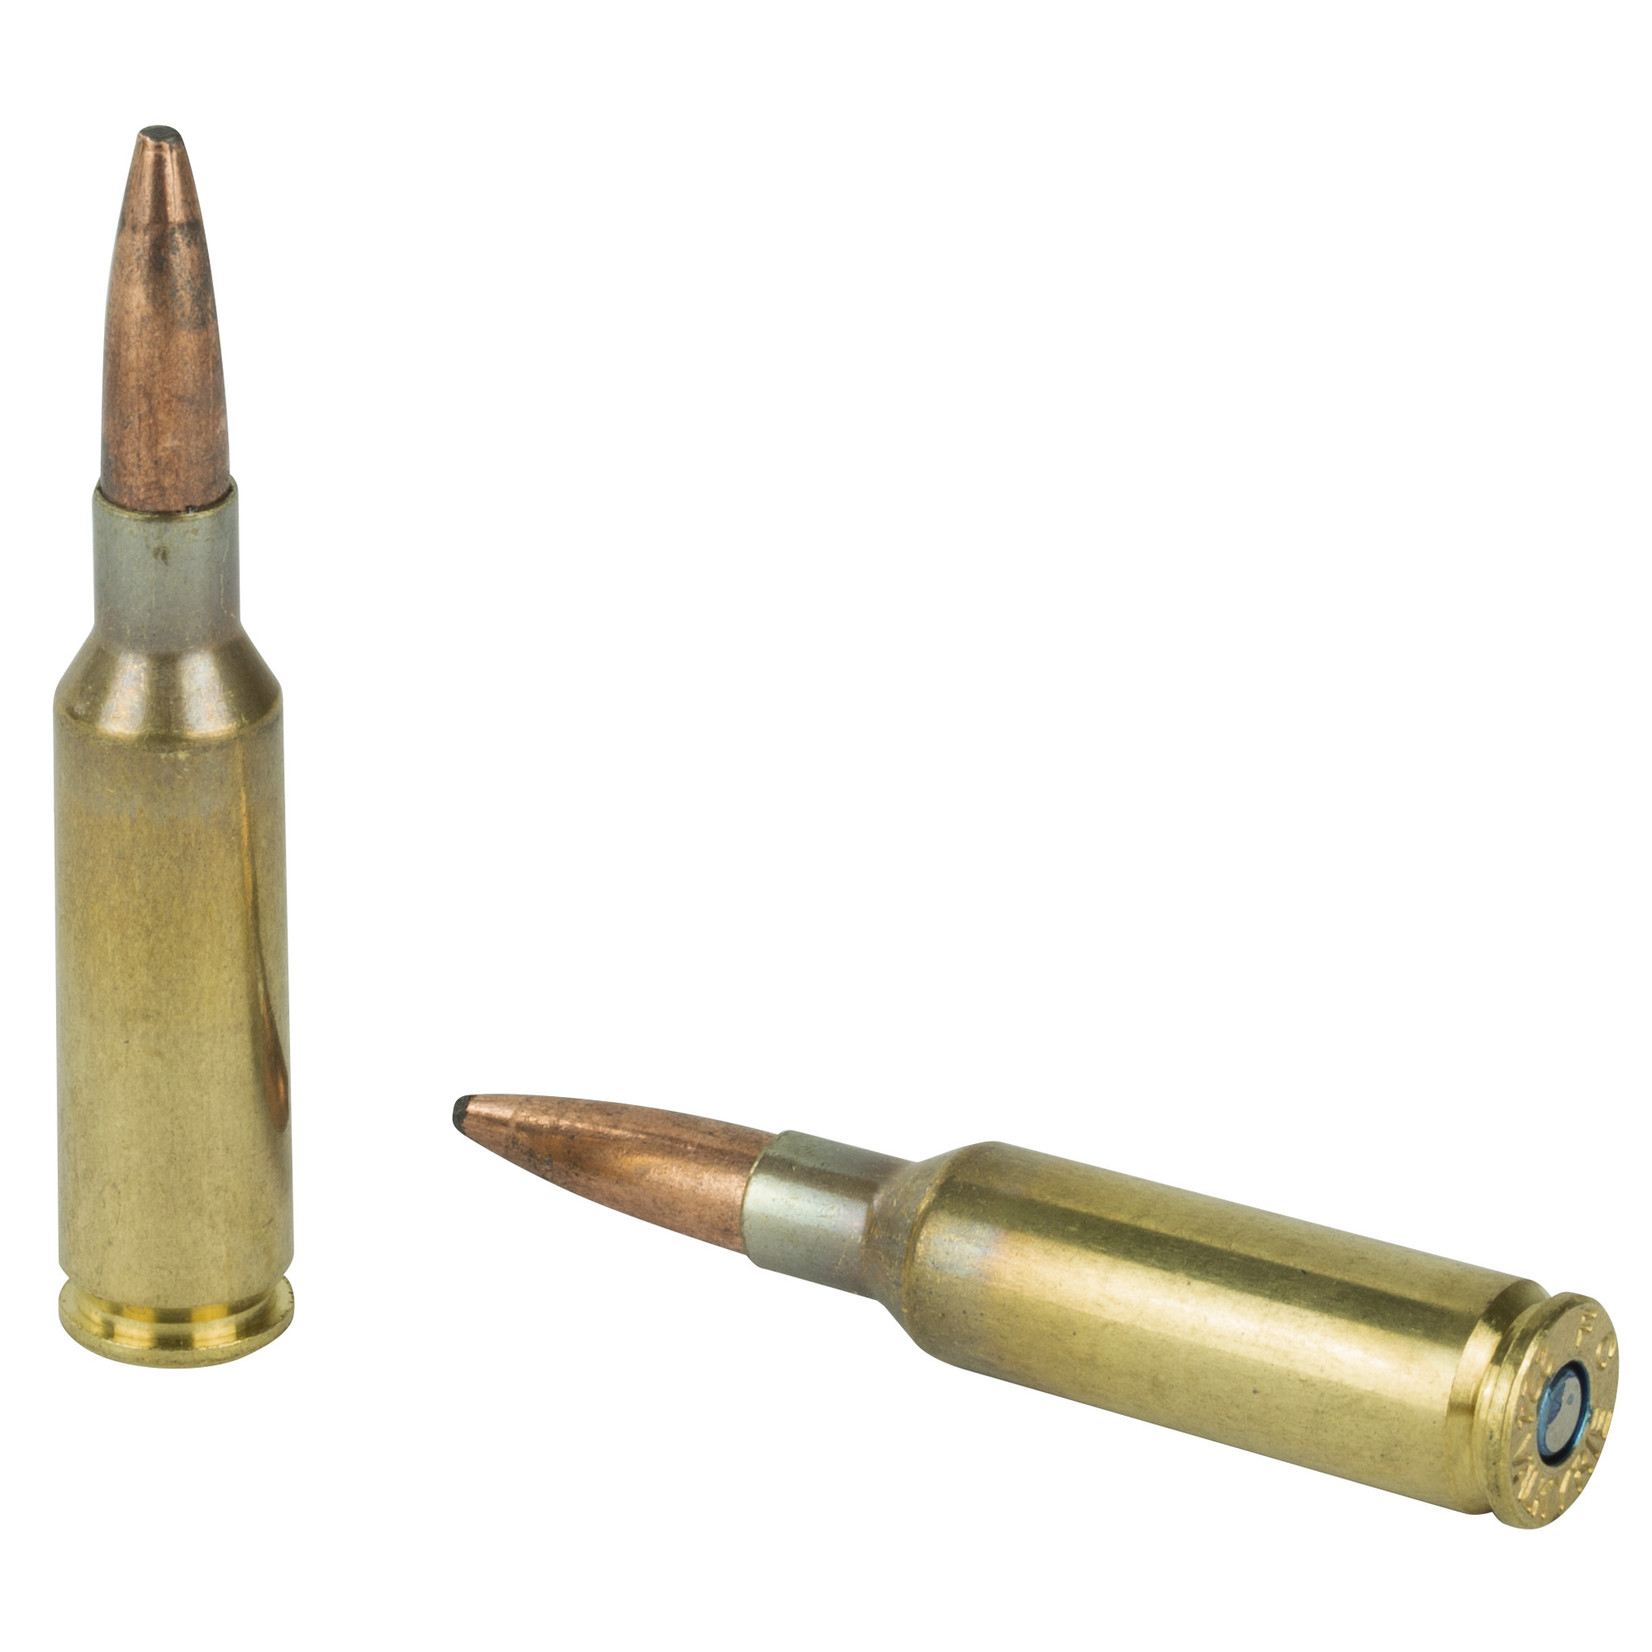 Federal Federal, Fusion, 224 Valkyrie, 90 Grain, Boat tail, 20 Round Box